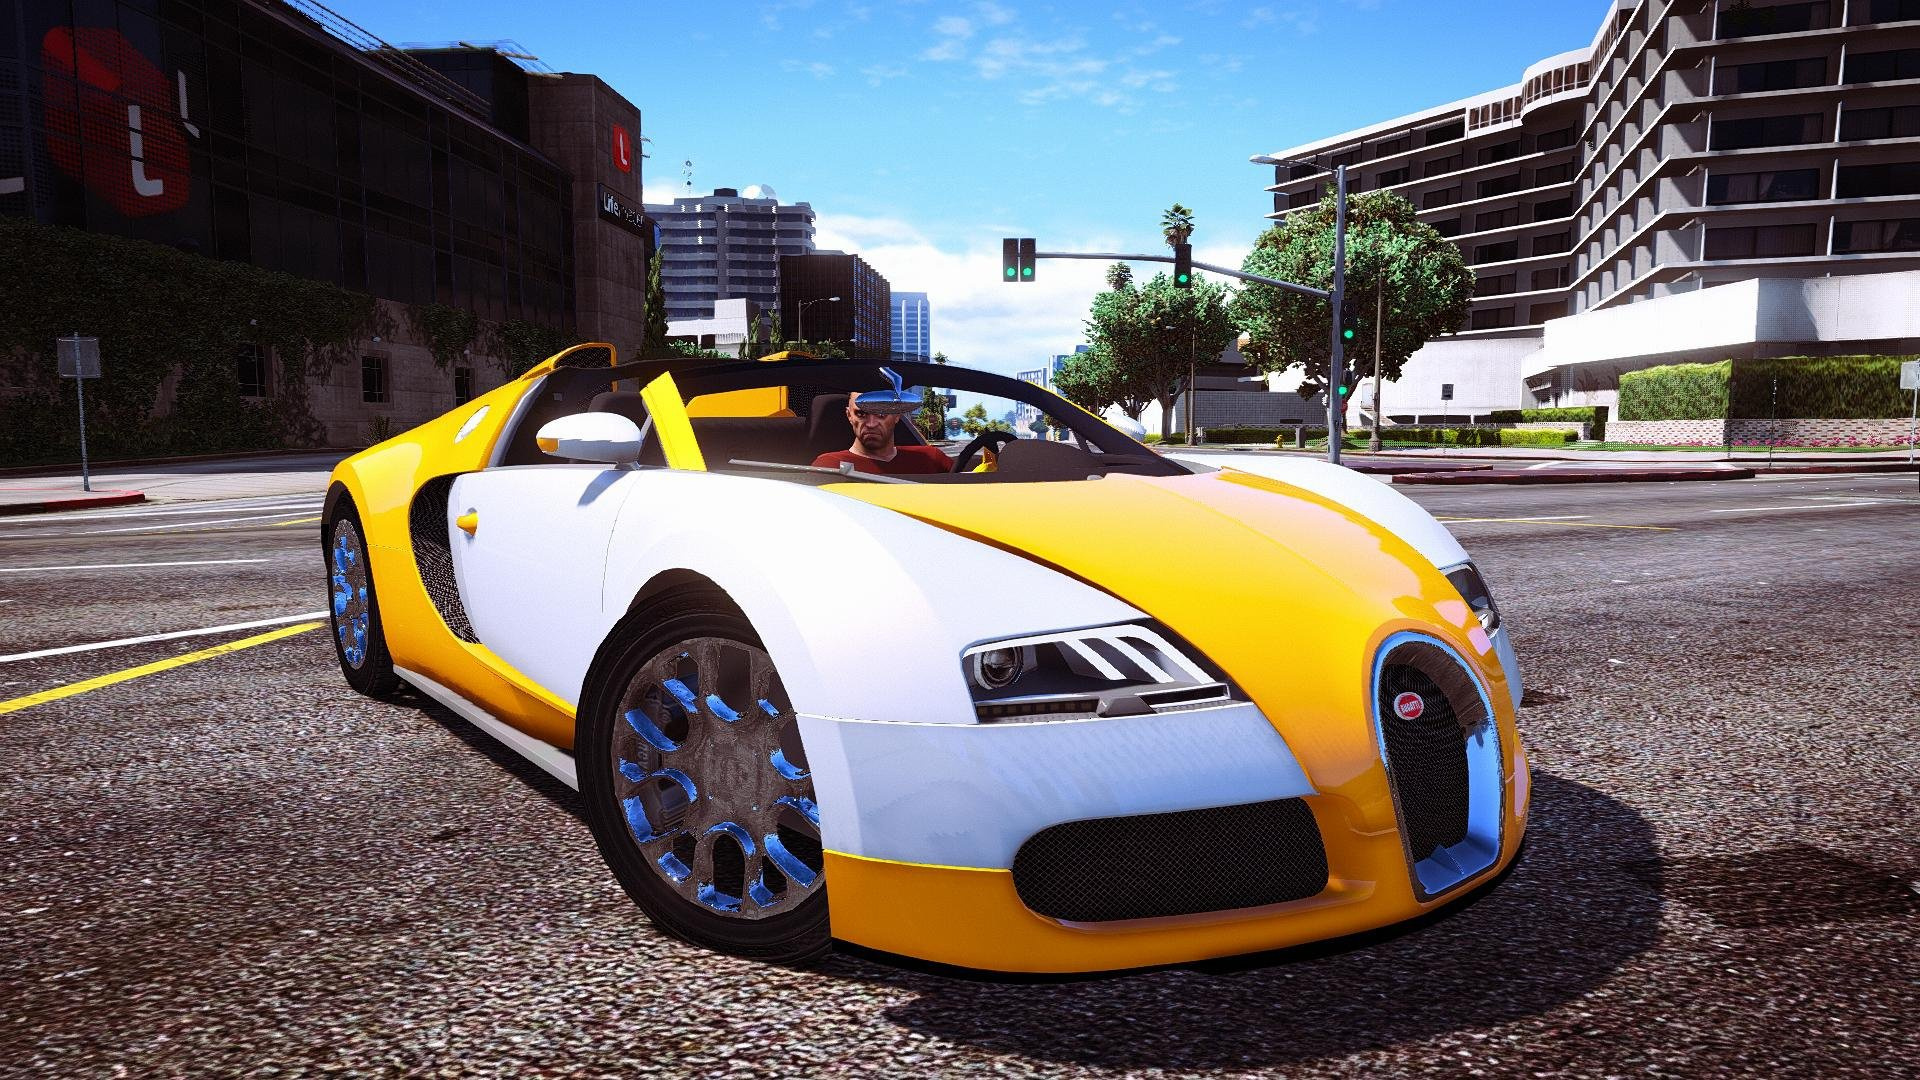 bugatti veyron location gta 5 masini rare in gta 5 games arena grand theft auto 5 gta 5 how to. Black Bedroom Furniture Sets. Home Design Ideas